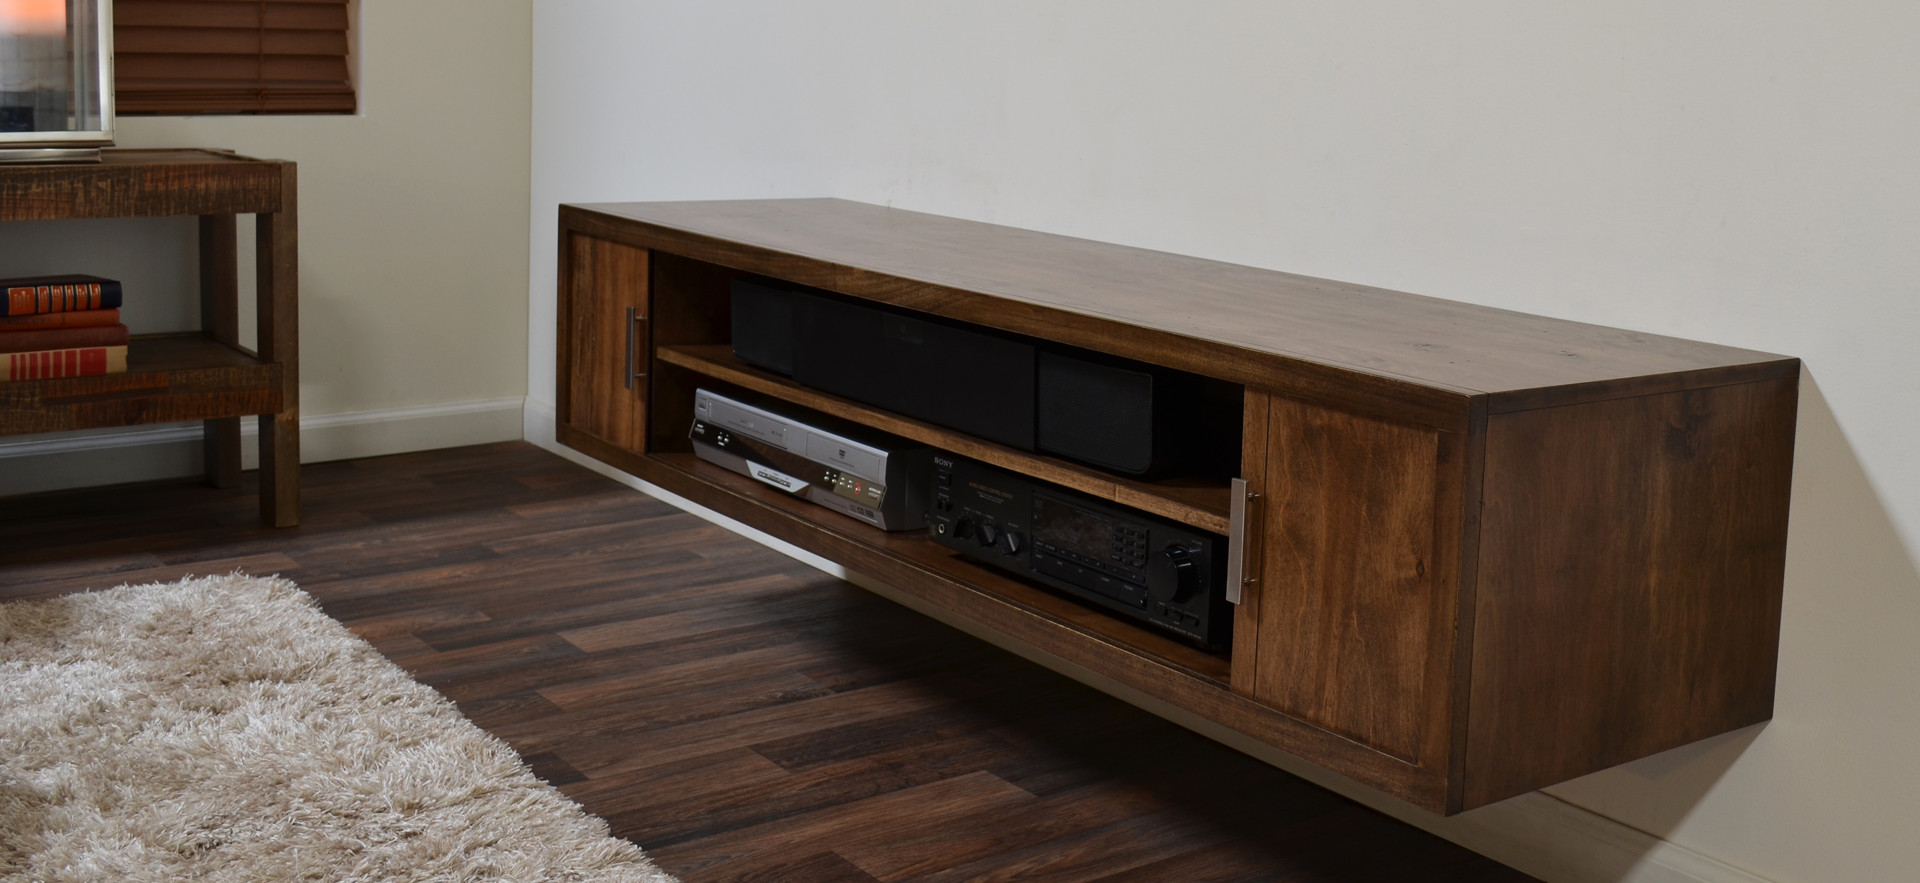 Idea Bedroom Floating Media Console A Way To Display Your Tv With